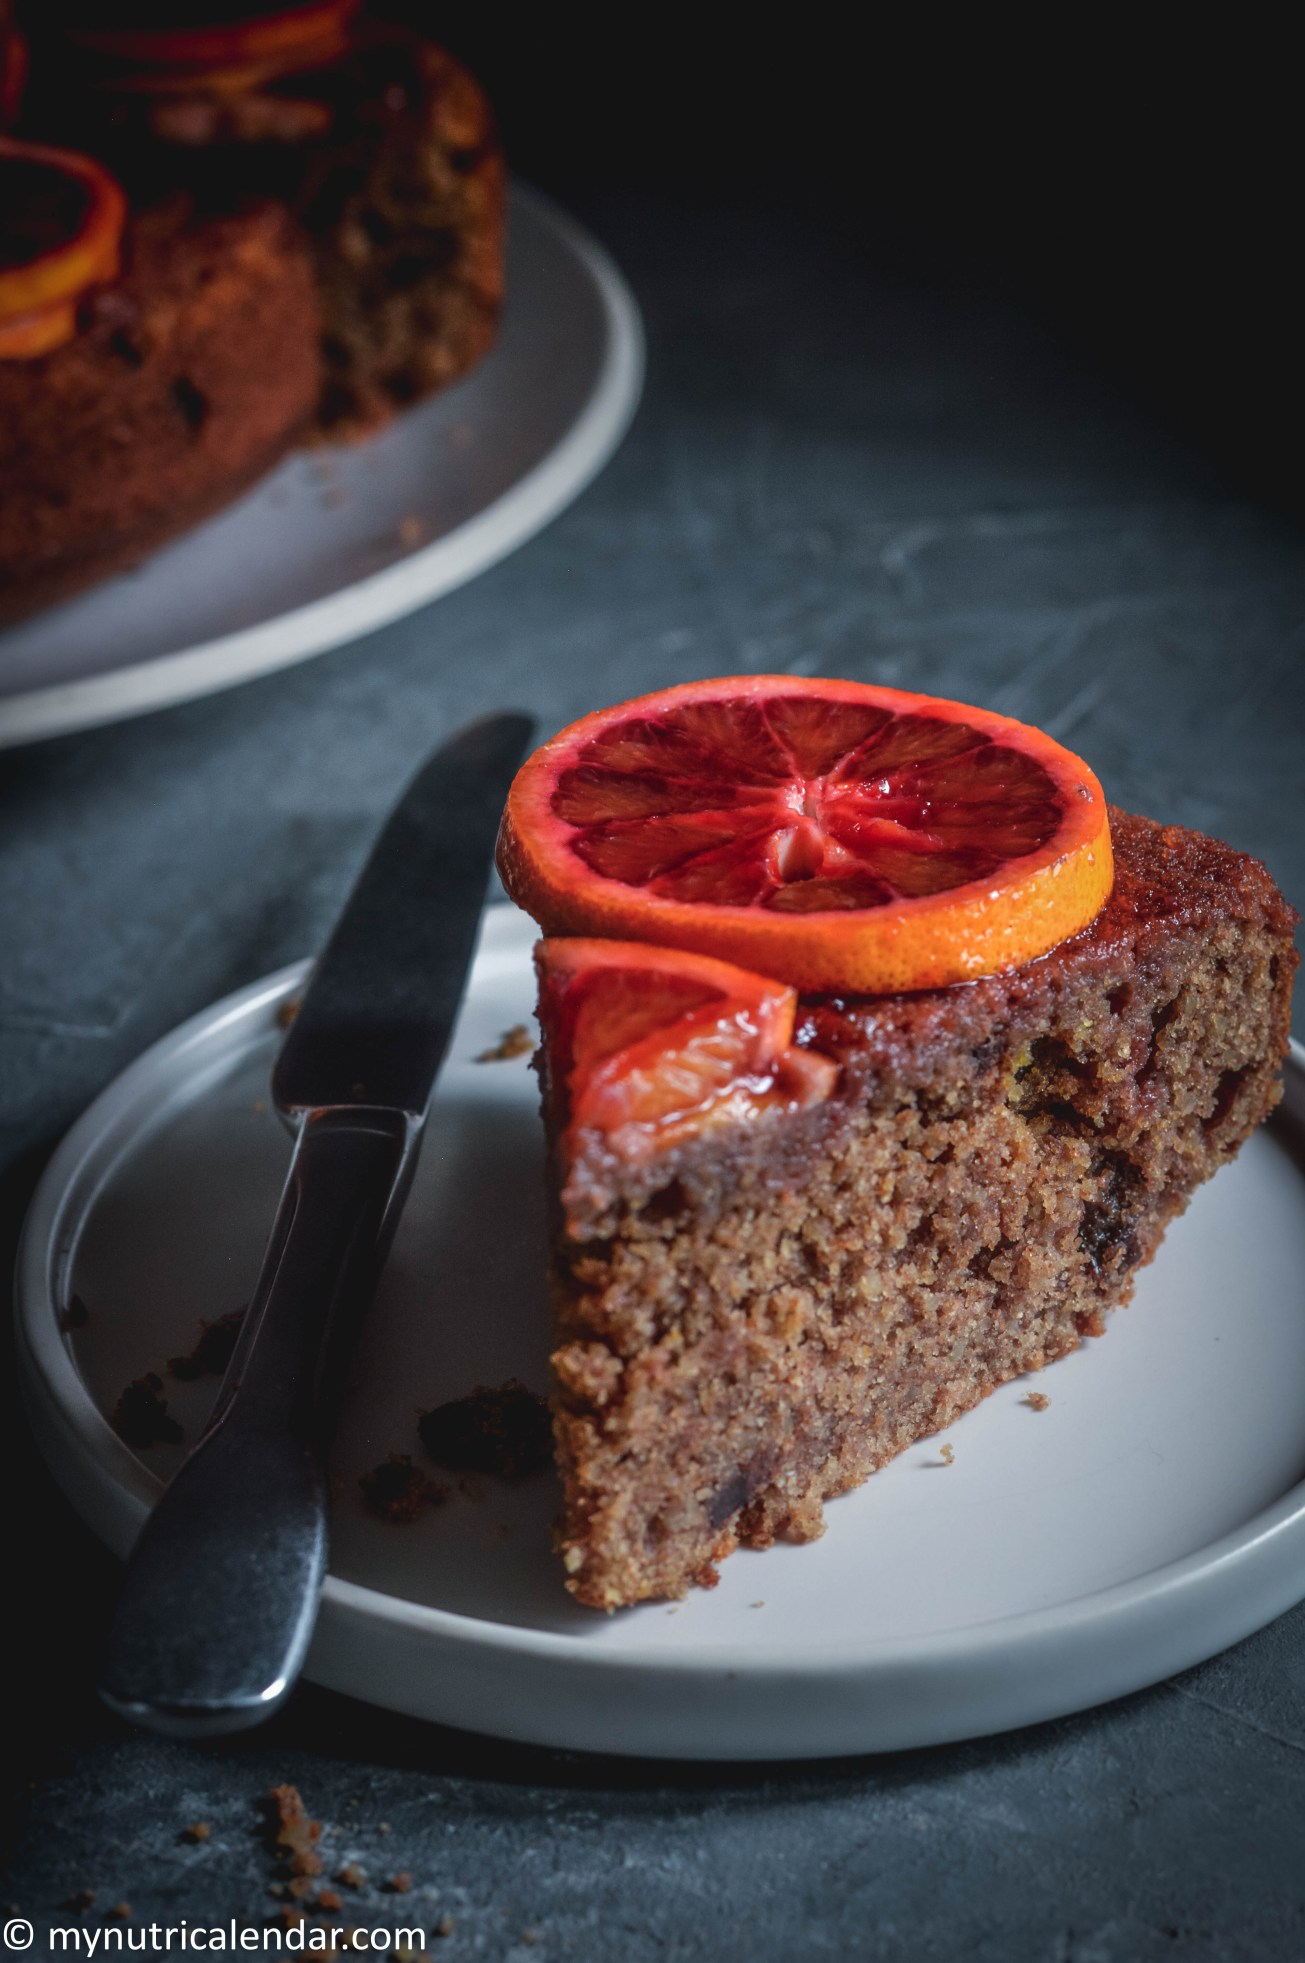 blood-orange-cake-chocolate-chips-raisins-no-sugar-10